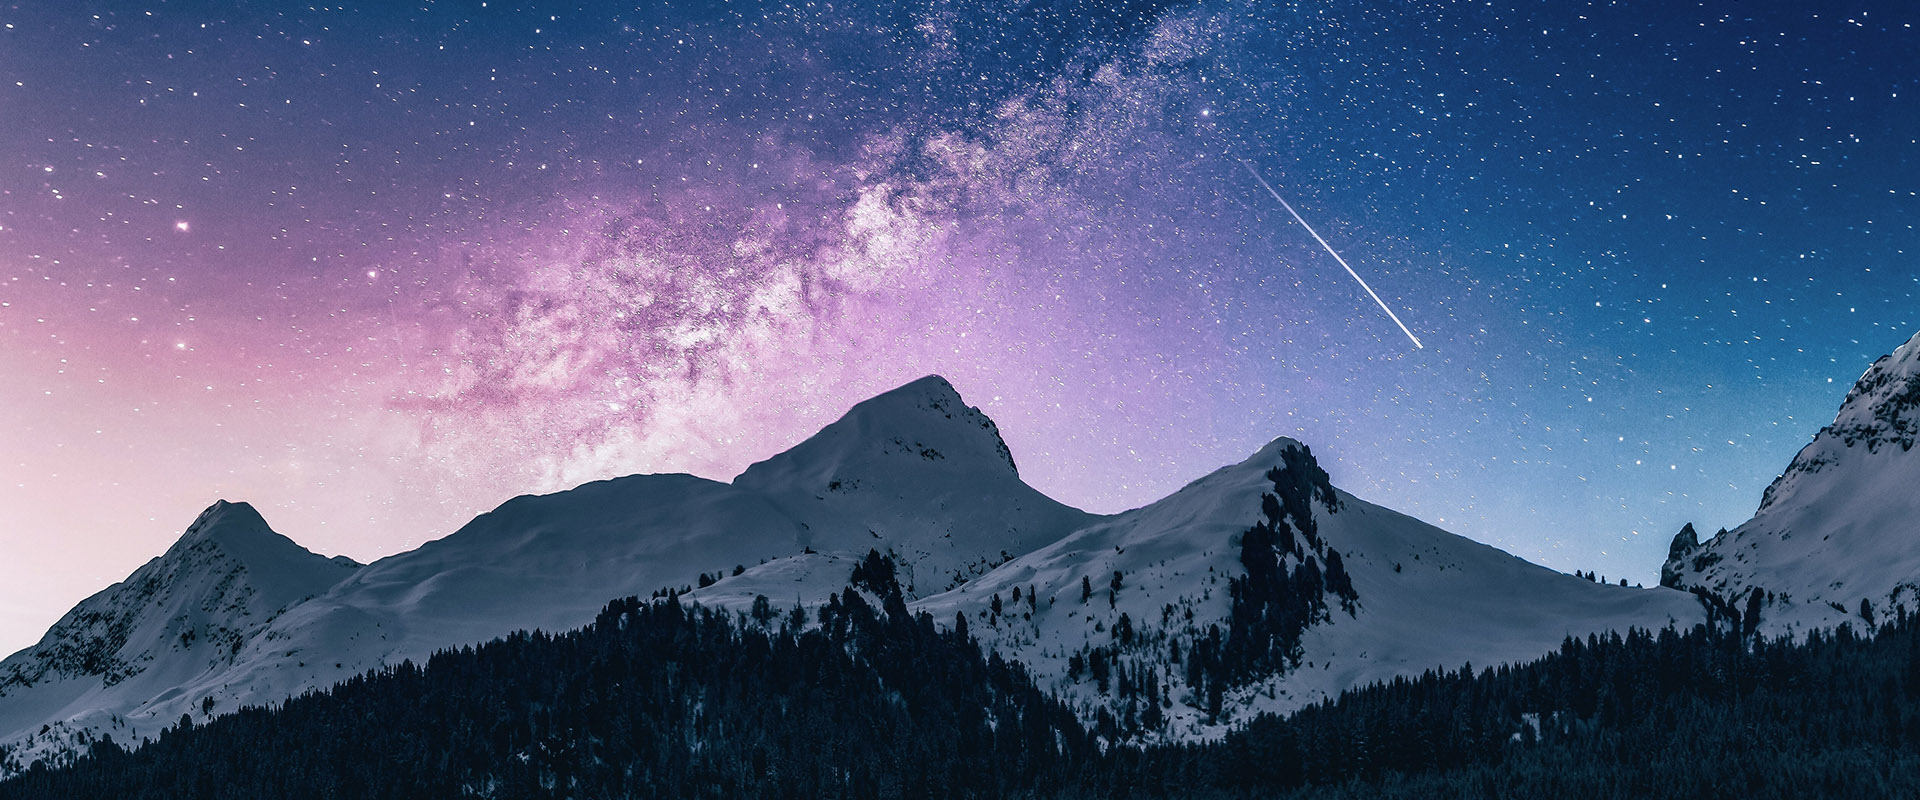 stars above mountains